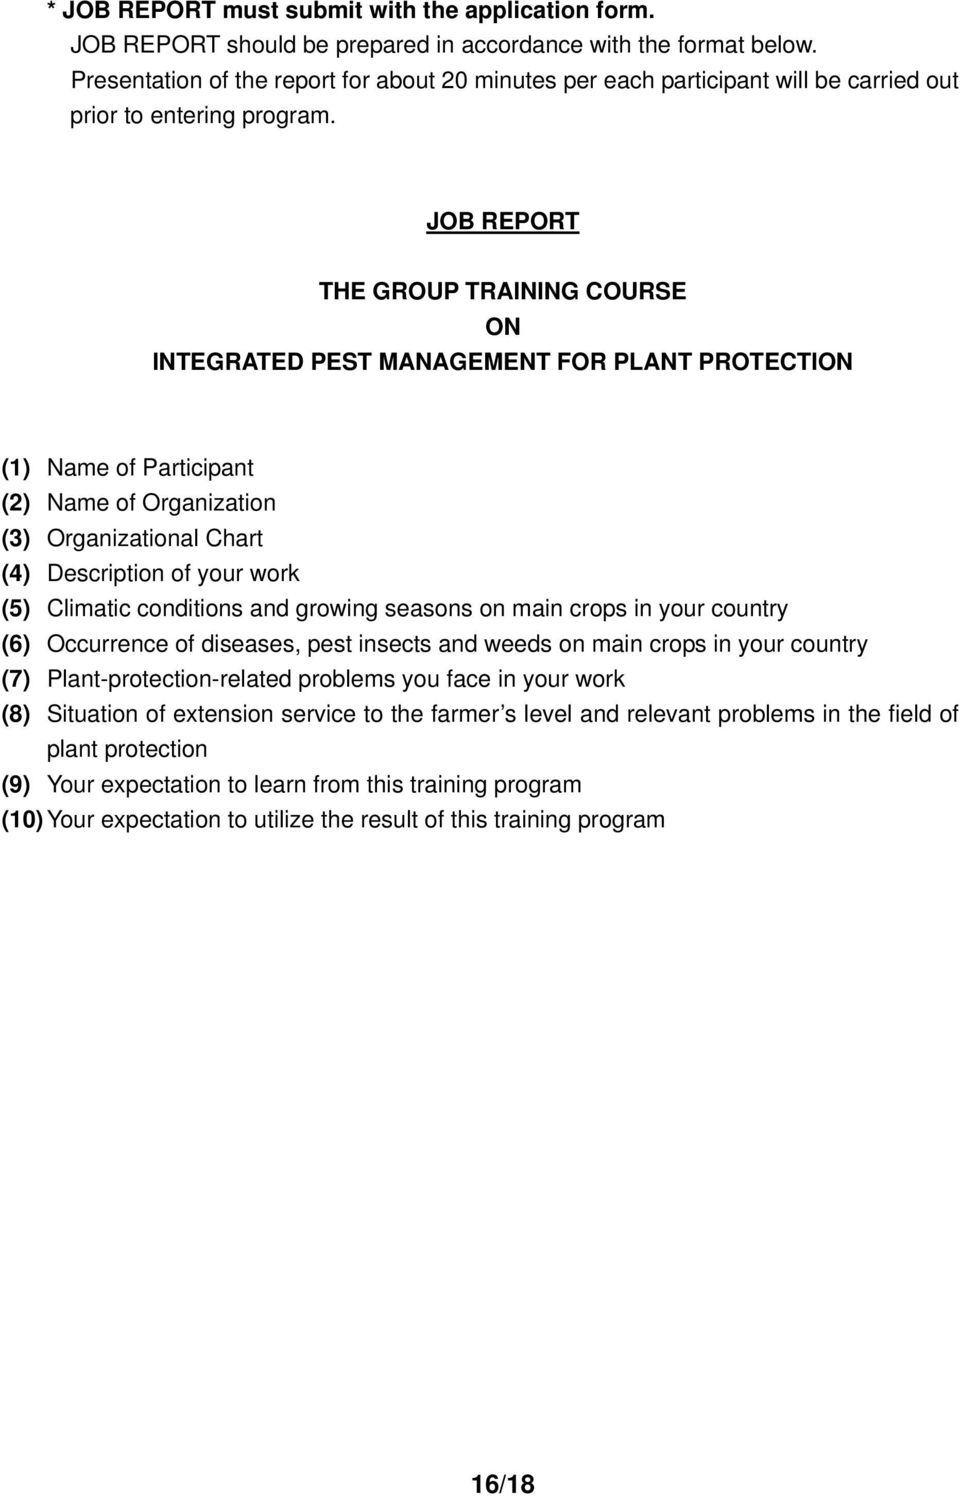 JOB REPORT THE GROUP TRAINING COURSE ON INTEGRATED PEST MANAGEMENT FOR PLANT PROTECTION (1) Name of Participant (2) Name of Organization (3) Organizational Chart (4) Description of your work (5)